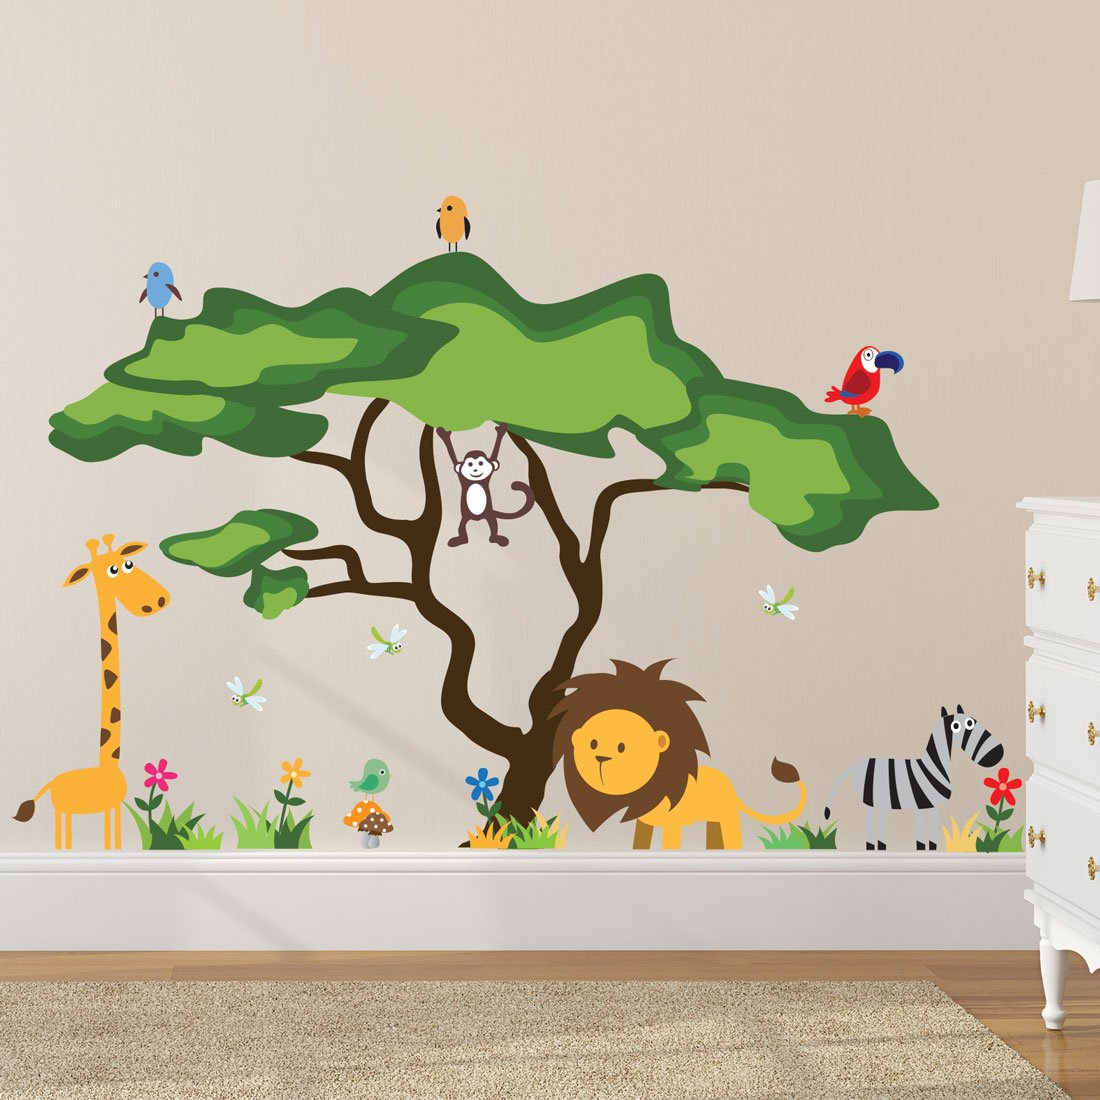 Wall Stickers | Amazon.com | Office & School Supplies - Education ...